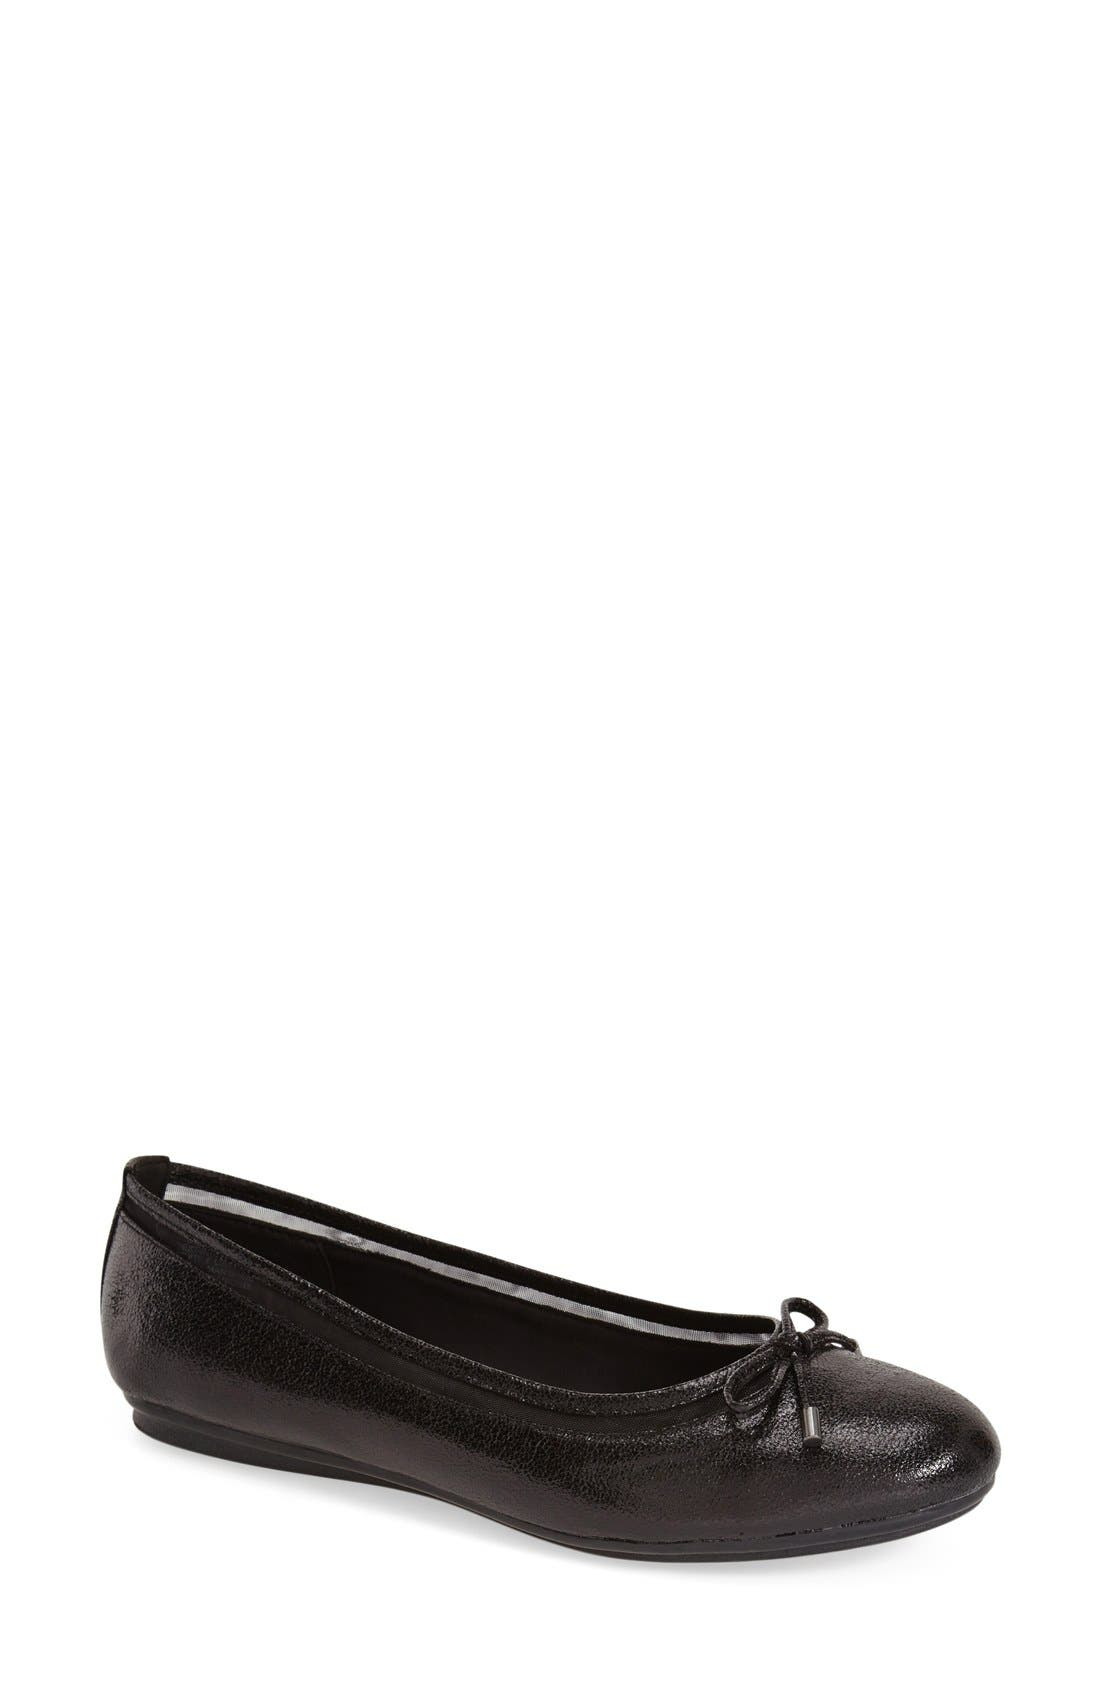 'e360 - Glorien' Ballet Flat, Main, color, 001